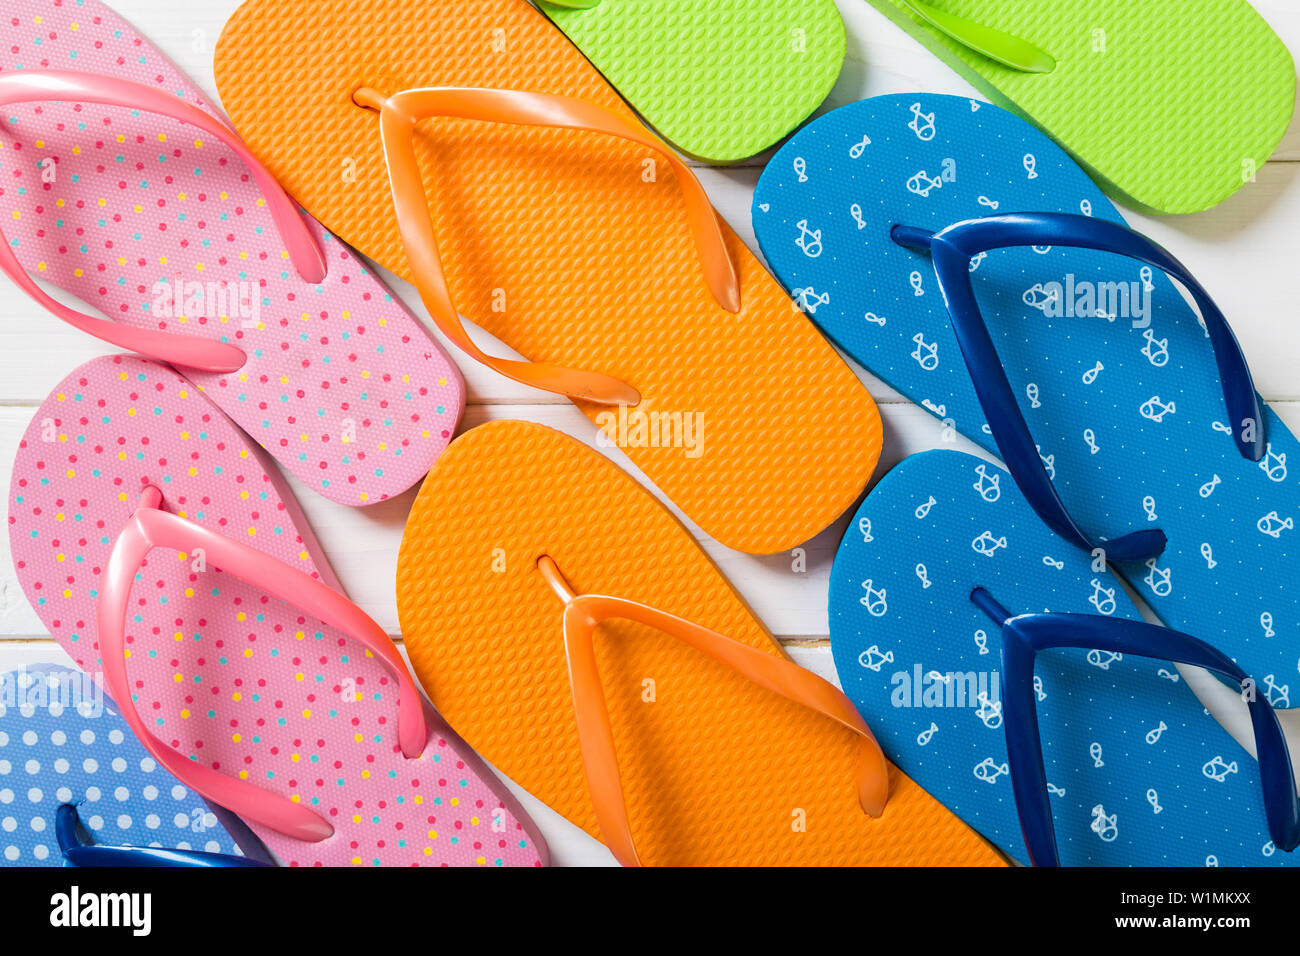 a lot of flip flop colored sandals, summer vacation on wooden background, copy space top view. - Stock Image